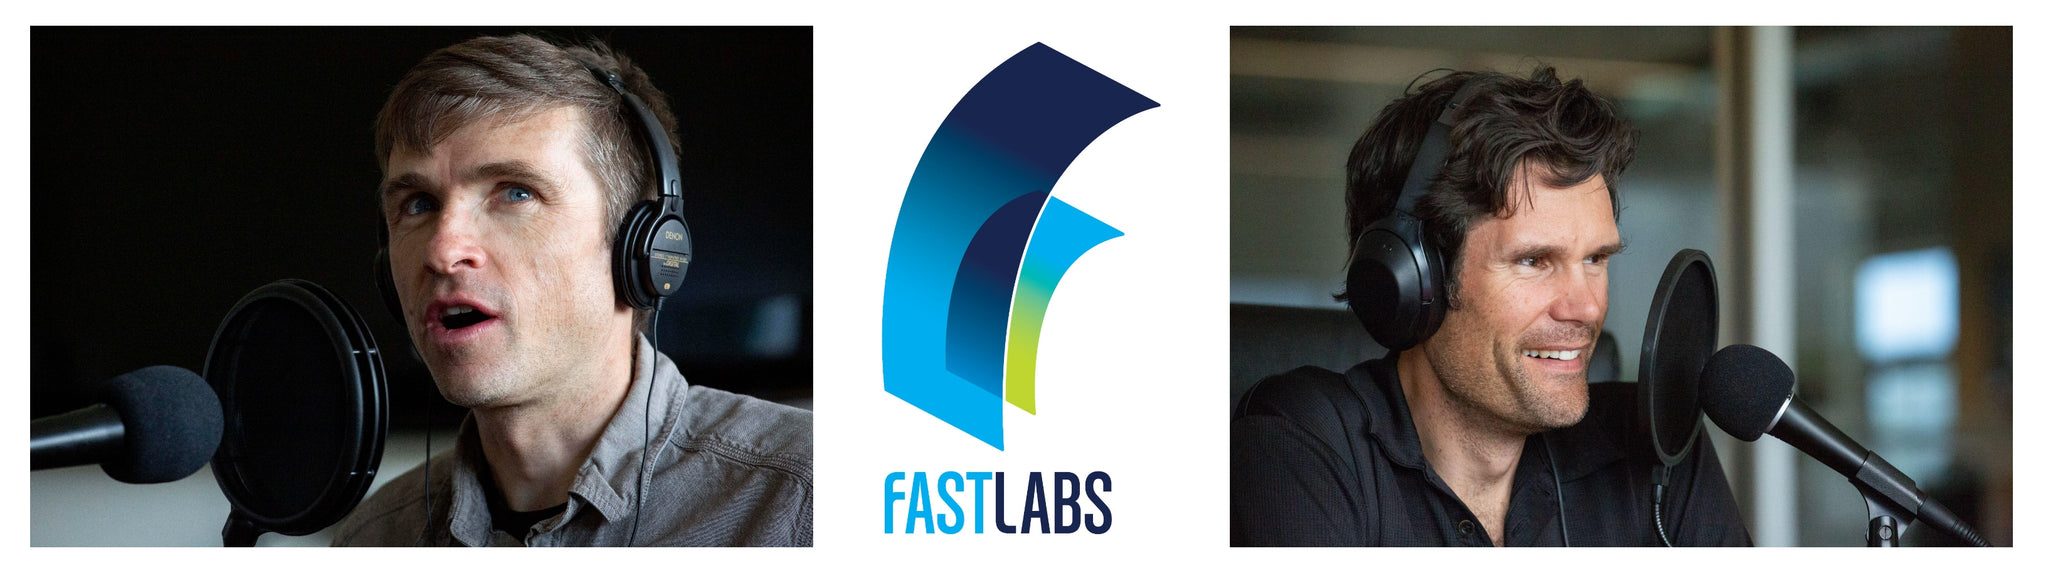 Fast labs cycling performance training